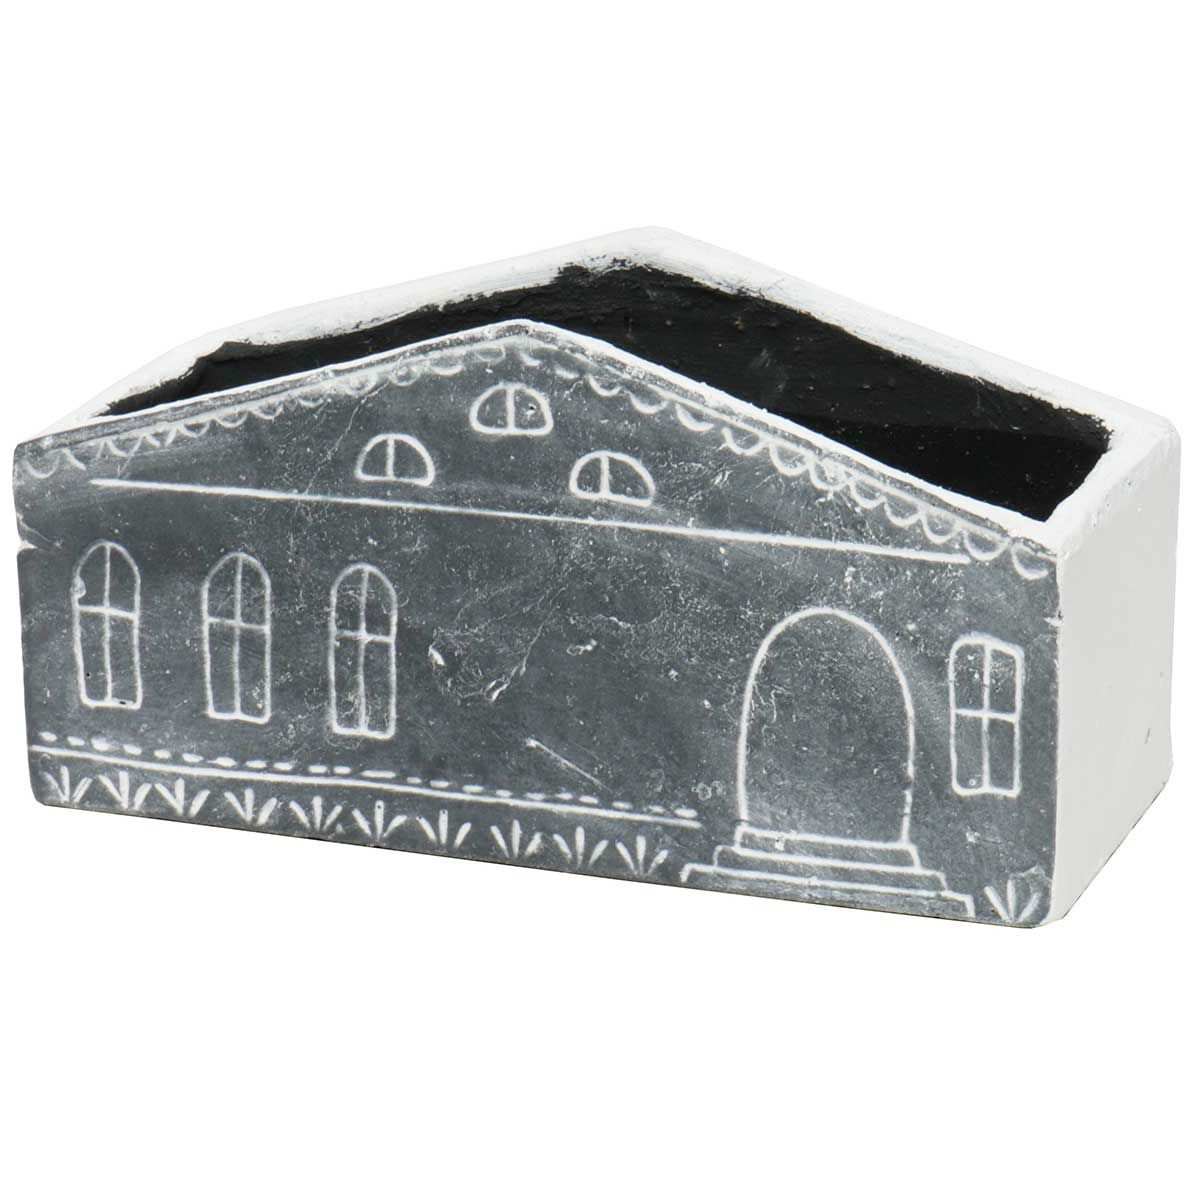 "RECTANGLE HOUSE PLANTER 9.5""X4.5"